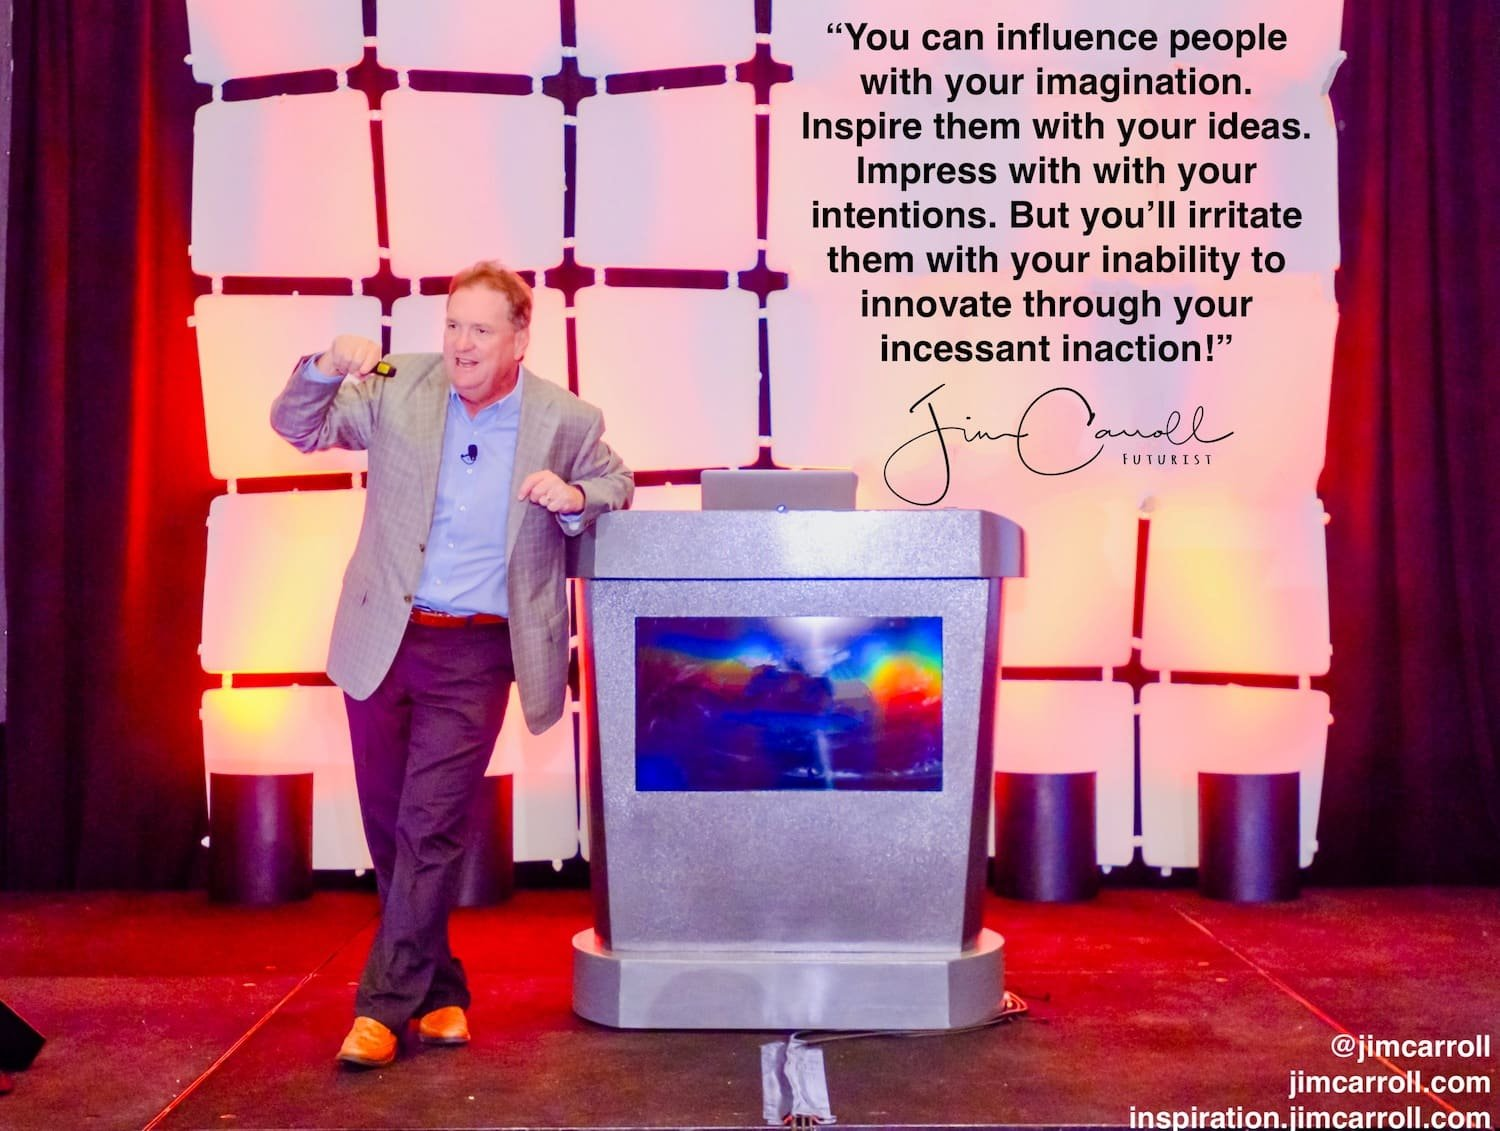 """Daily Inspiration: """"You can influence people with your imagination...irritate them with your inability to innovate through your incessant inaction!"""""""